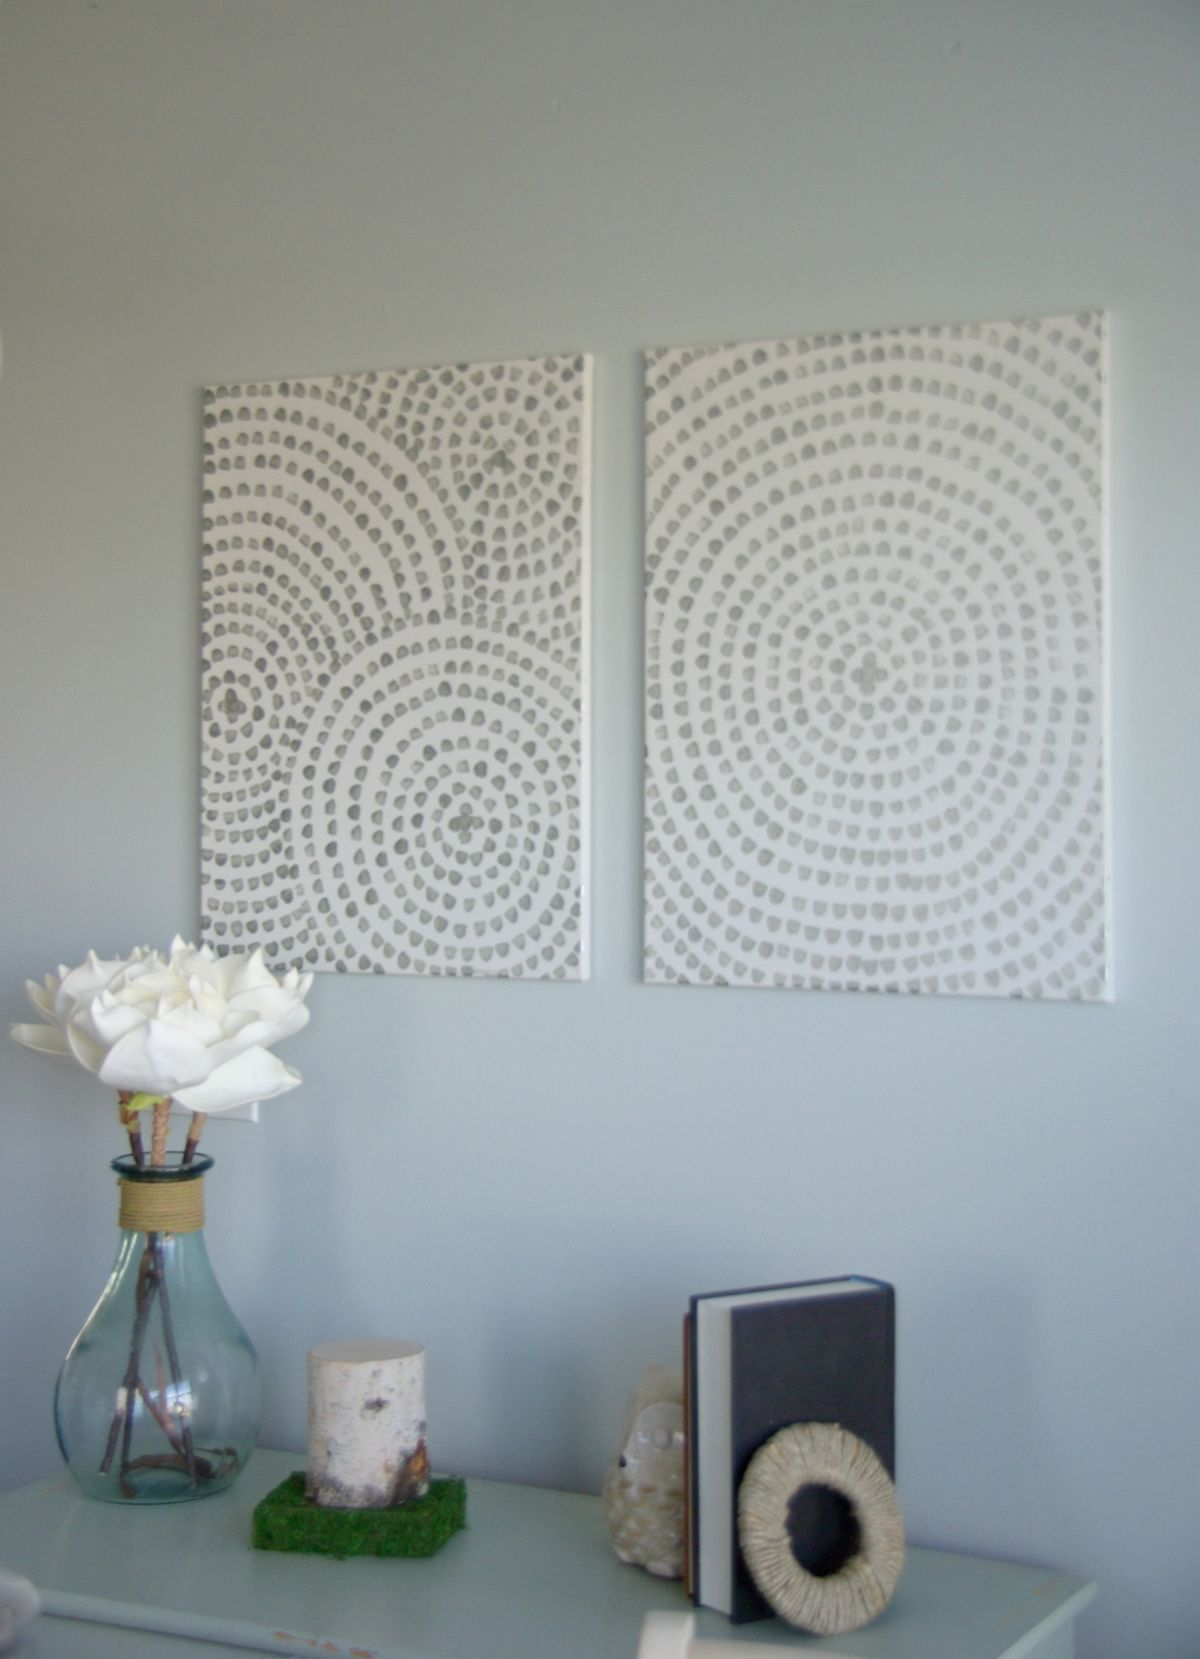 DIY Canvas Wall Art - A Low Cost Way To Add Art To Your Home on Pinterest Wall Decor  id=36261